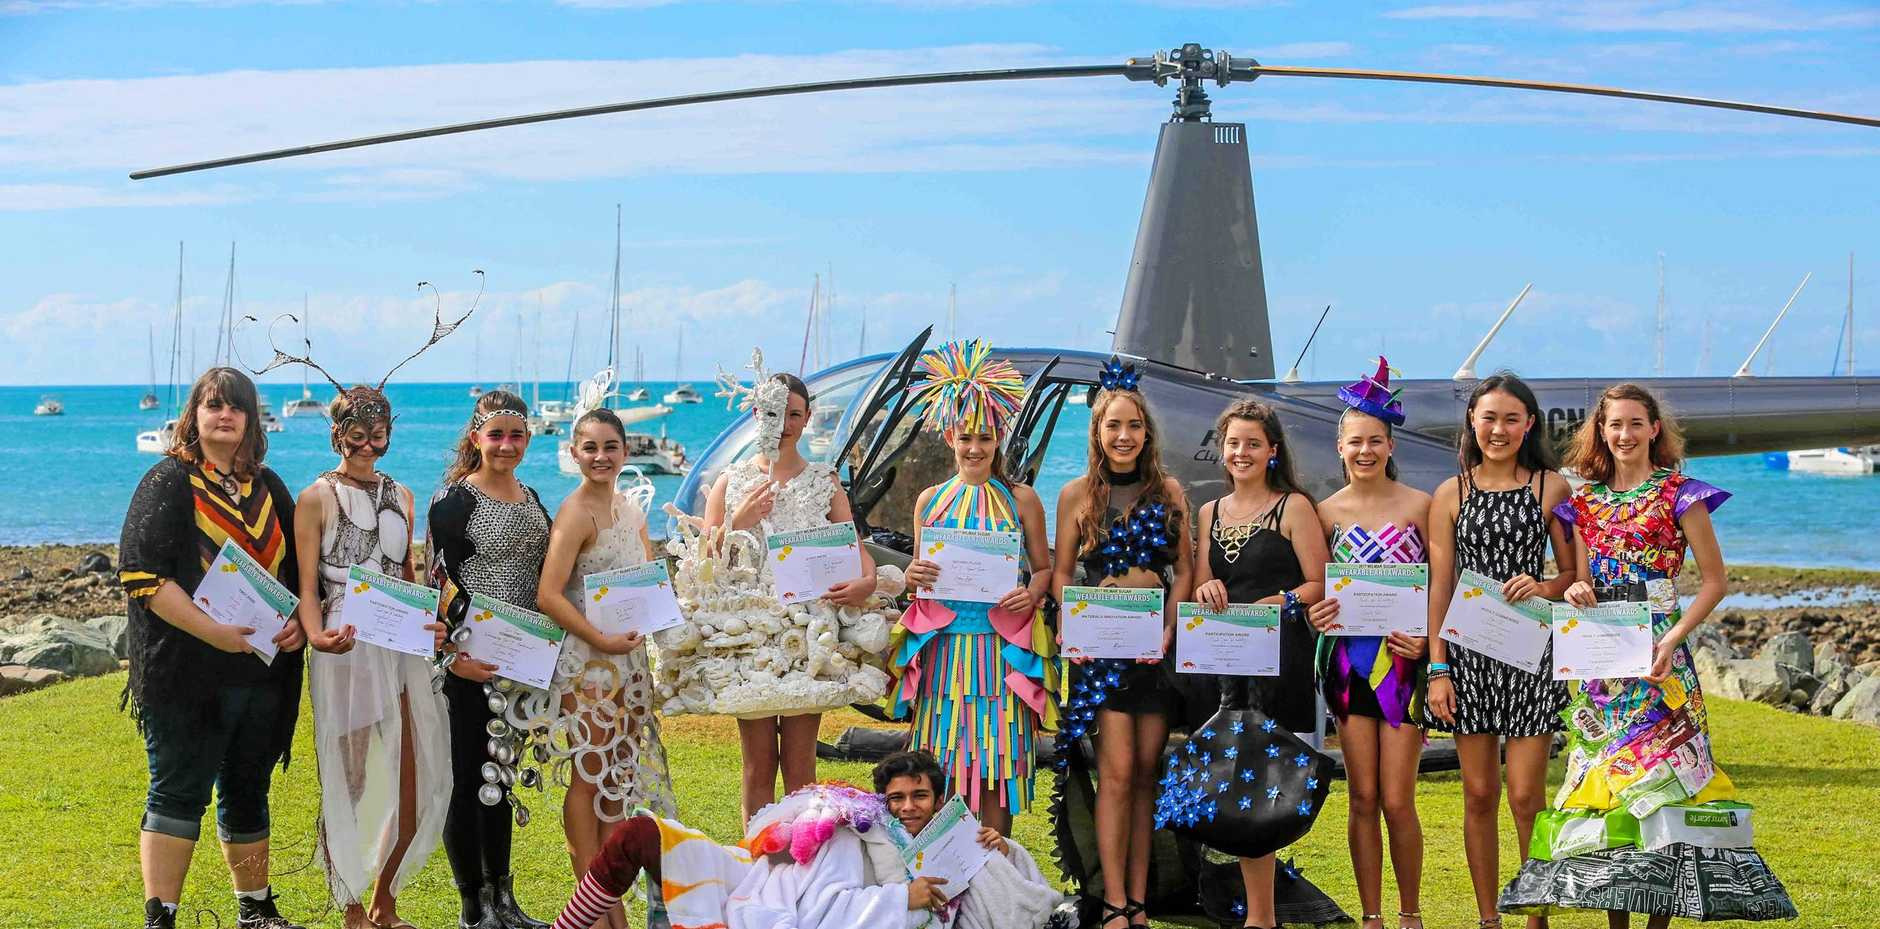 MAKING FULL USE: Creativity abounds at the Wilmar Sugar Wearable Art Awards, one of the major highlights of the Great Barrier Reef Festival. Entries are now open for the Wearable Art Awards and Recyclable Regatta event.